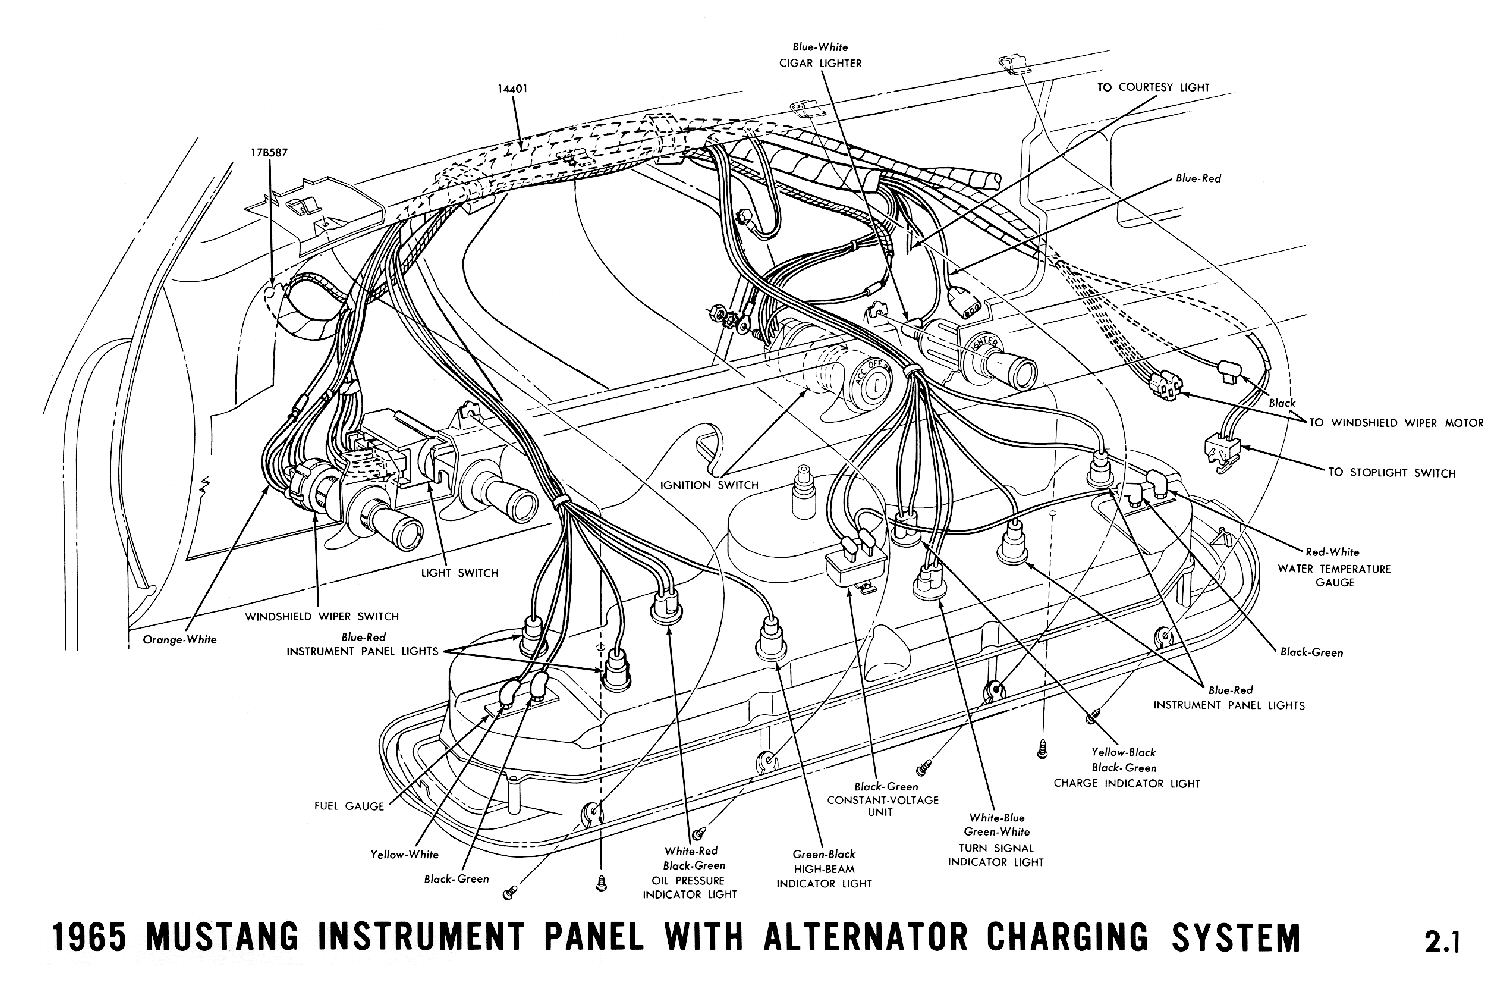 1965a 1965 mustang wiring diagrams average joe restoration 67 mustang dash wiring diagram at virtualis.co